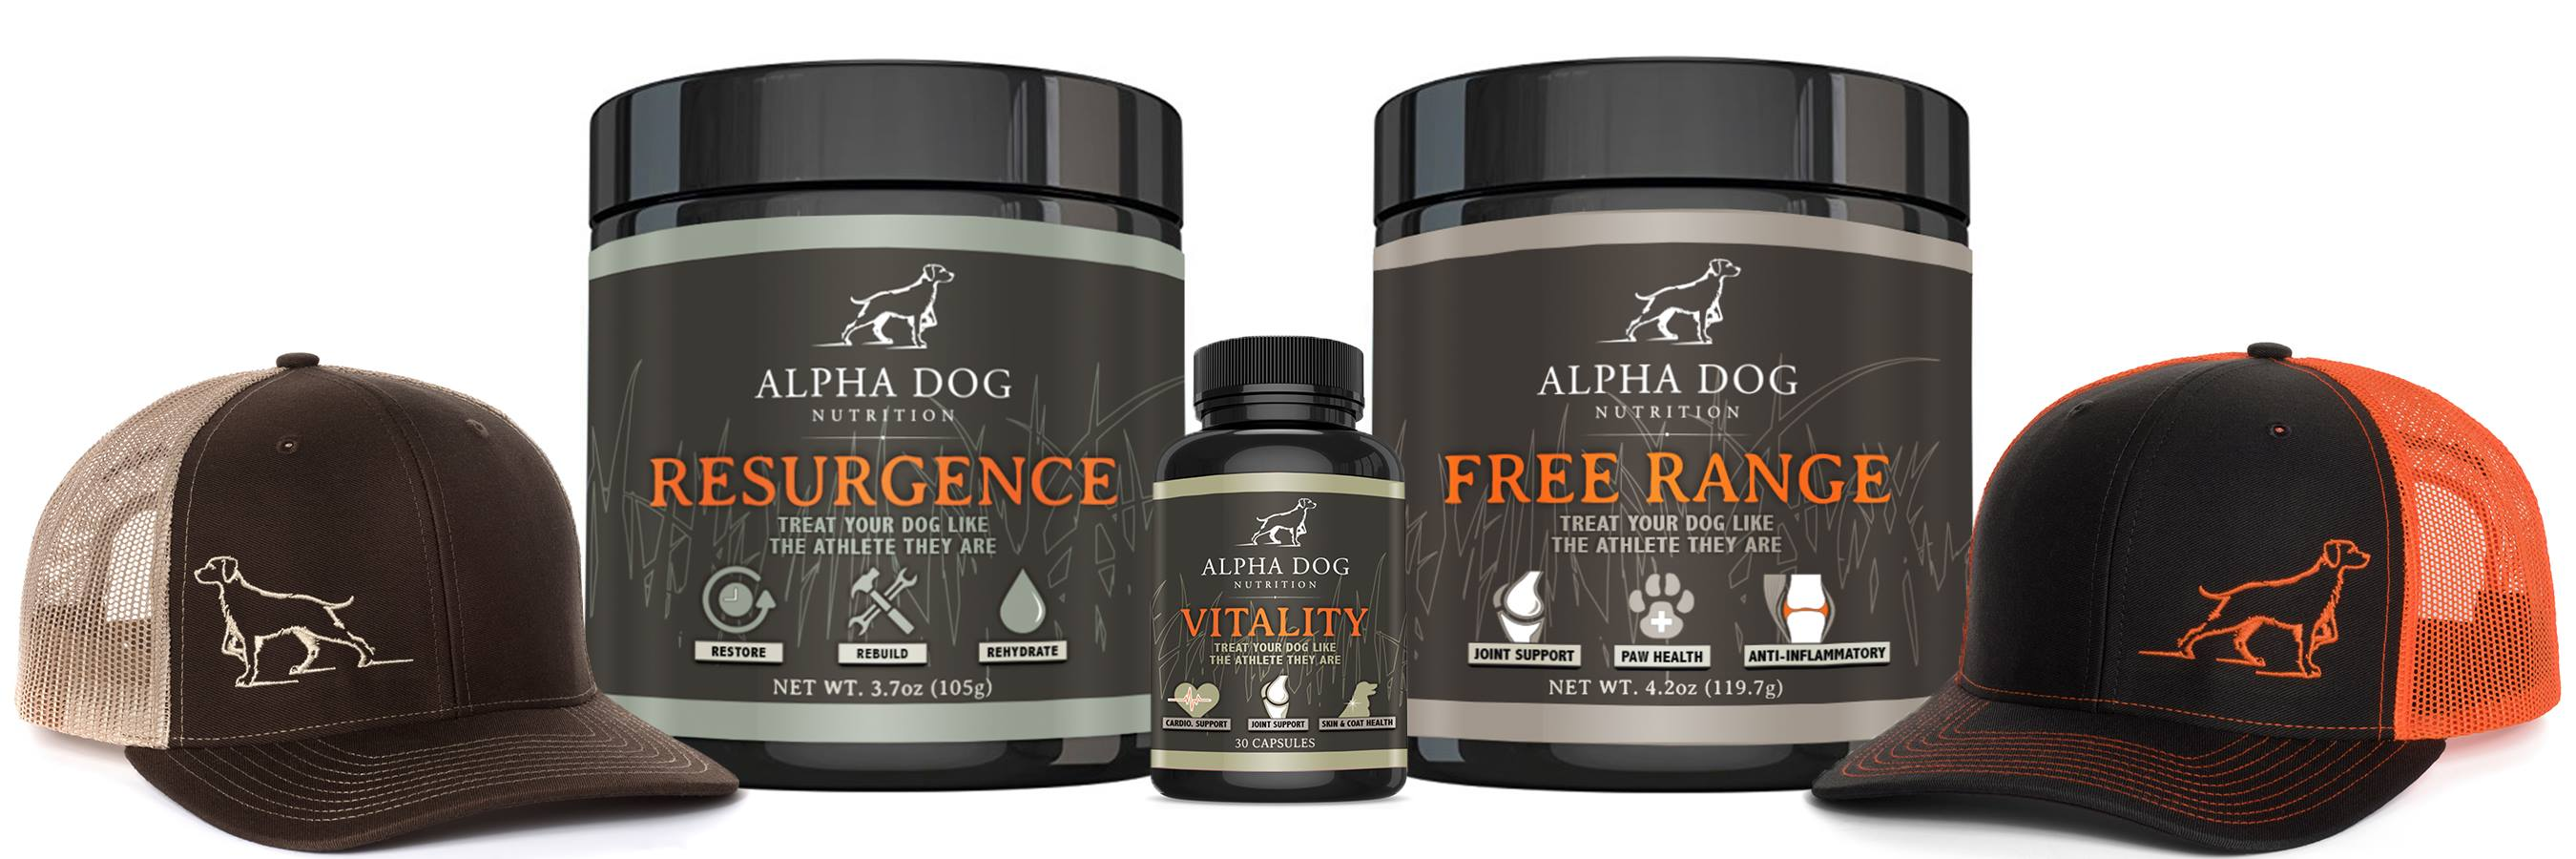 Alpha Dog Nutrition Spread